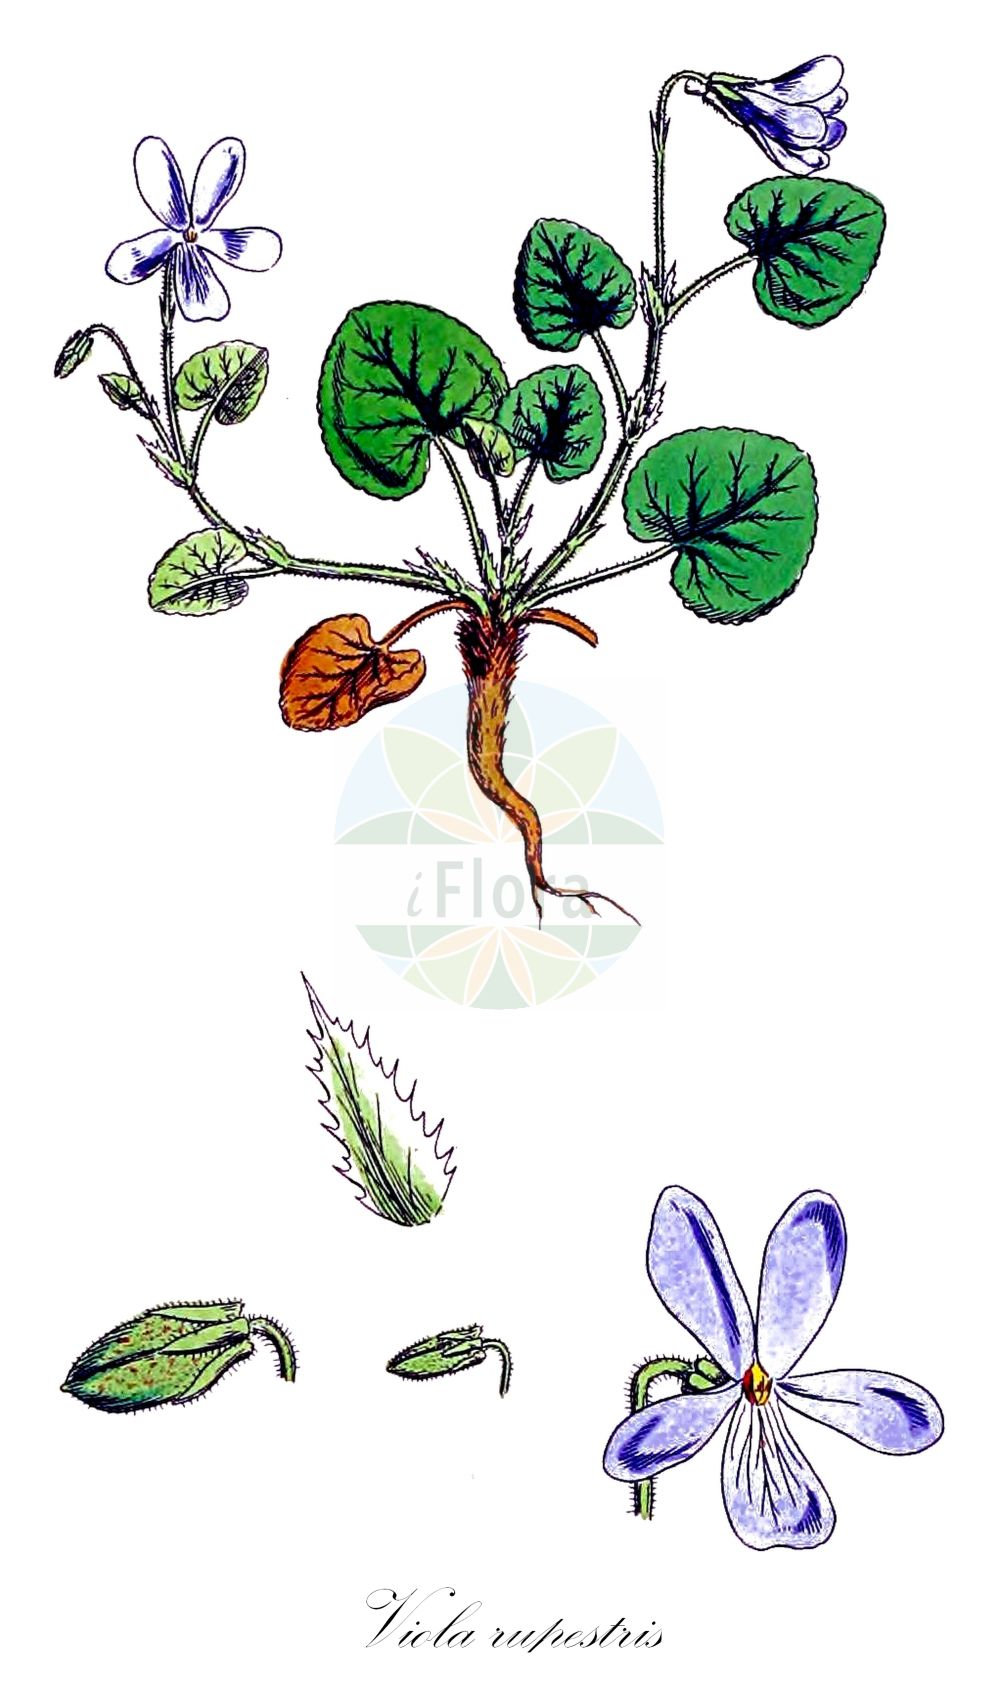 Historische Abbildung von Viola rupestris (Sand-Veilchen - Teesdale Violet). Das Bild zeigt Blatt, Bluete, Frucht und Same. ---- Historical Drawing of Viola rupestris (Sand-Veilchen - Teesdale Violet).The image is showing leaf, flower, fruit and seed. (Viola rupestris,Sand-Veilchen,Teesdale Violet,Viola arenaria,Viola glaberrima,var. glaberrima,Felsen-Veilchen,Viola,Veilchen,violet,Violaceae,Veilchengewaechse,Violet family,Blatt,Bluete,Frucht,Same,leaf,flower,fruit,seed,Sowerby (1790-1813))